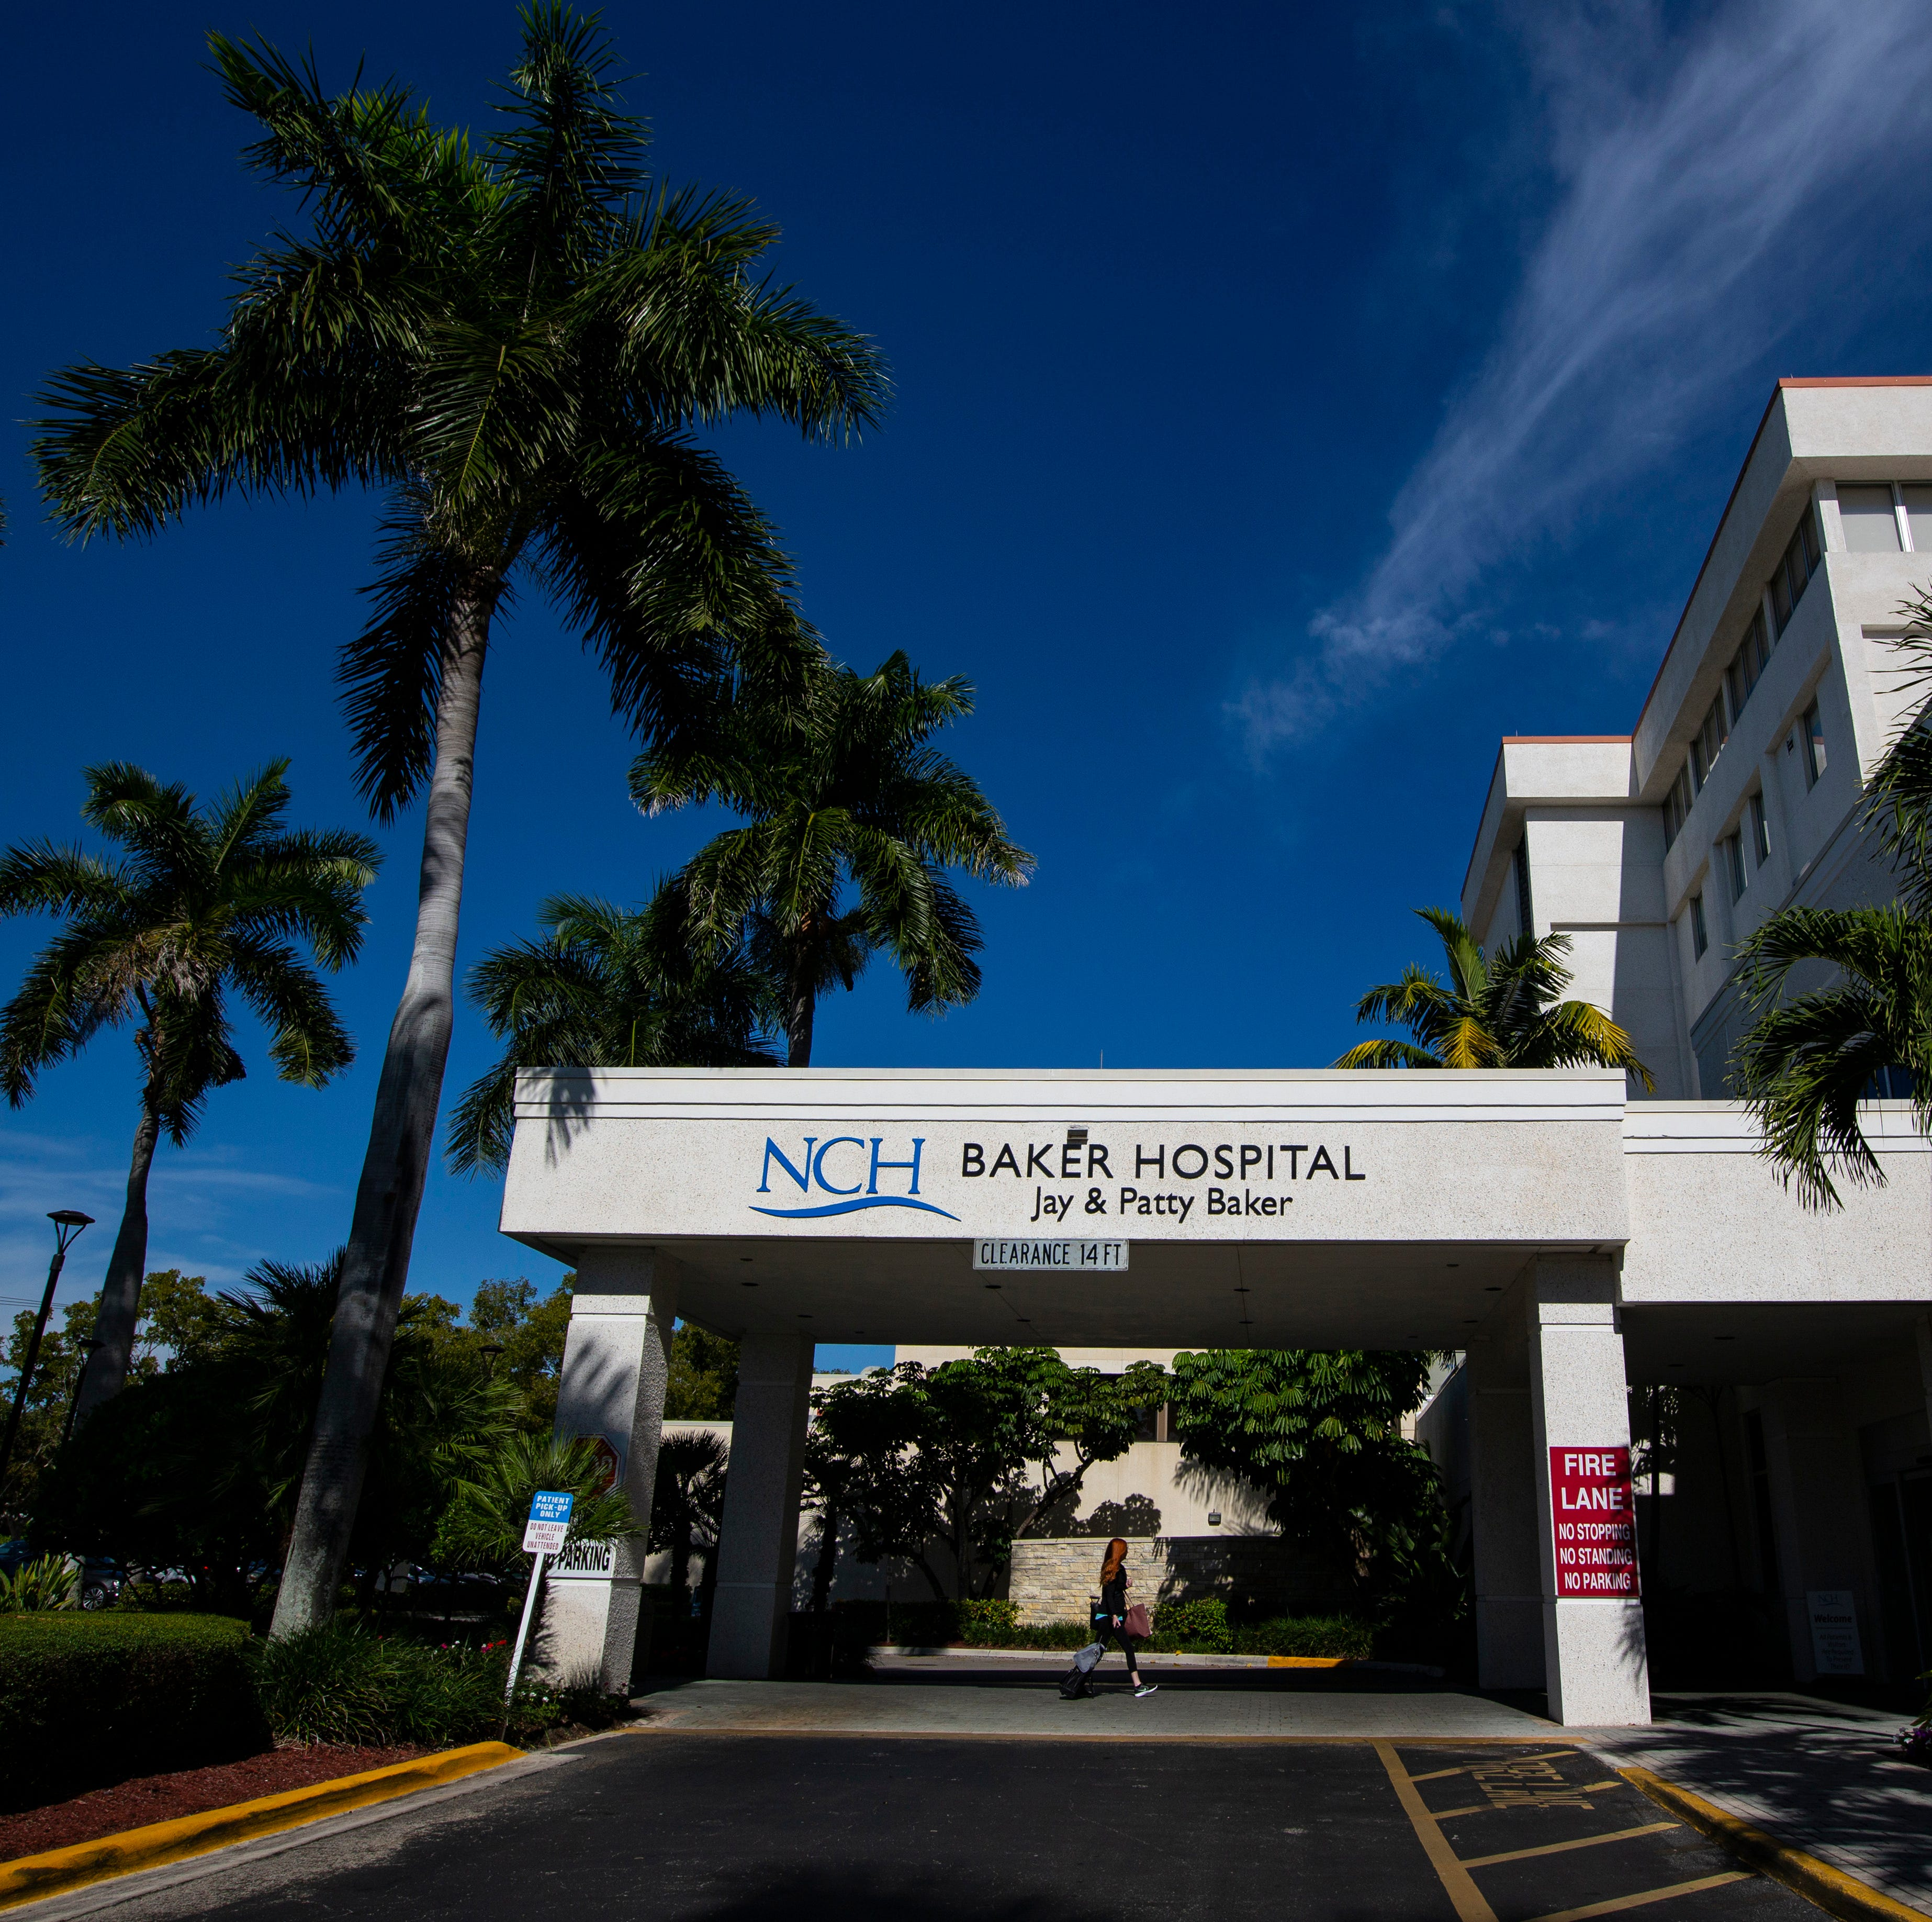 Search for new CEO of NCH Healthcare System faces criticism for lack of transparency